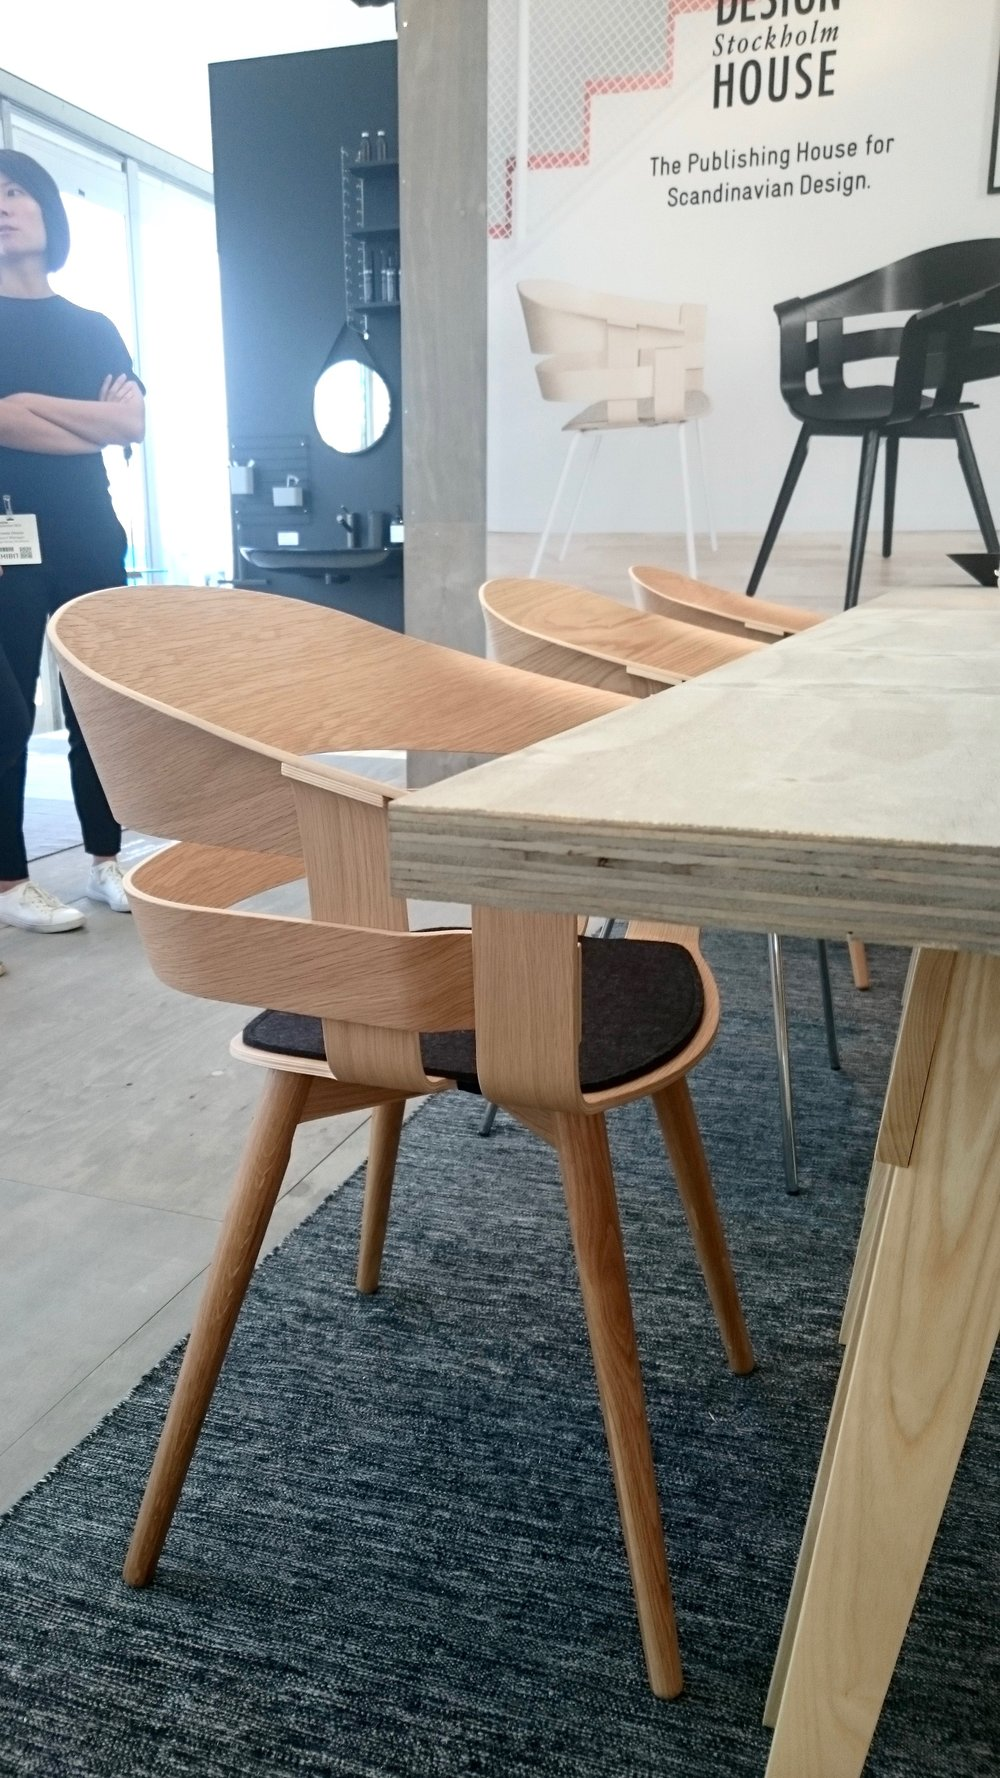 The Wick Chair Designed by Karl Malmvall and Jesper Stahl for Design House Stockholm at London Design Festival 2016– Smartstyle Interiors.jpg